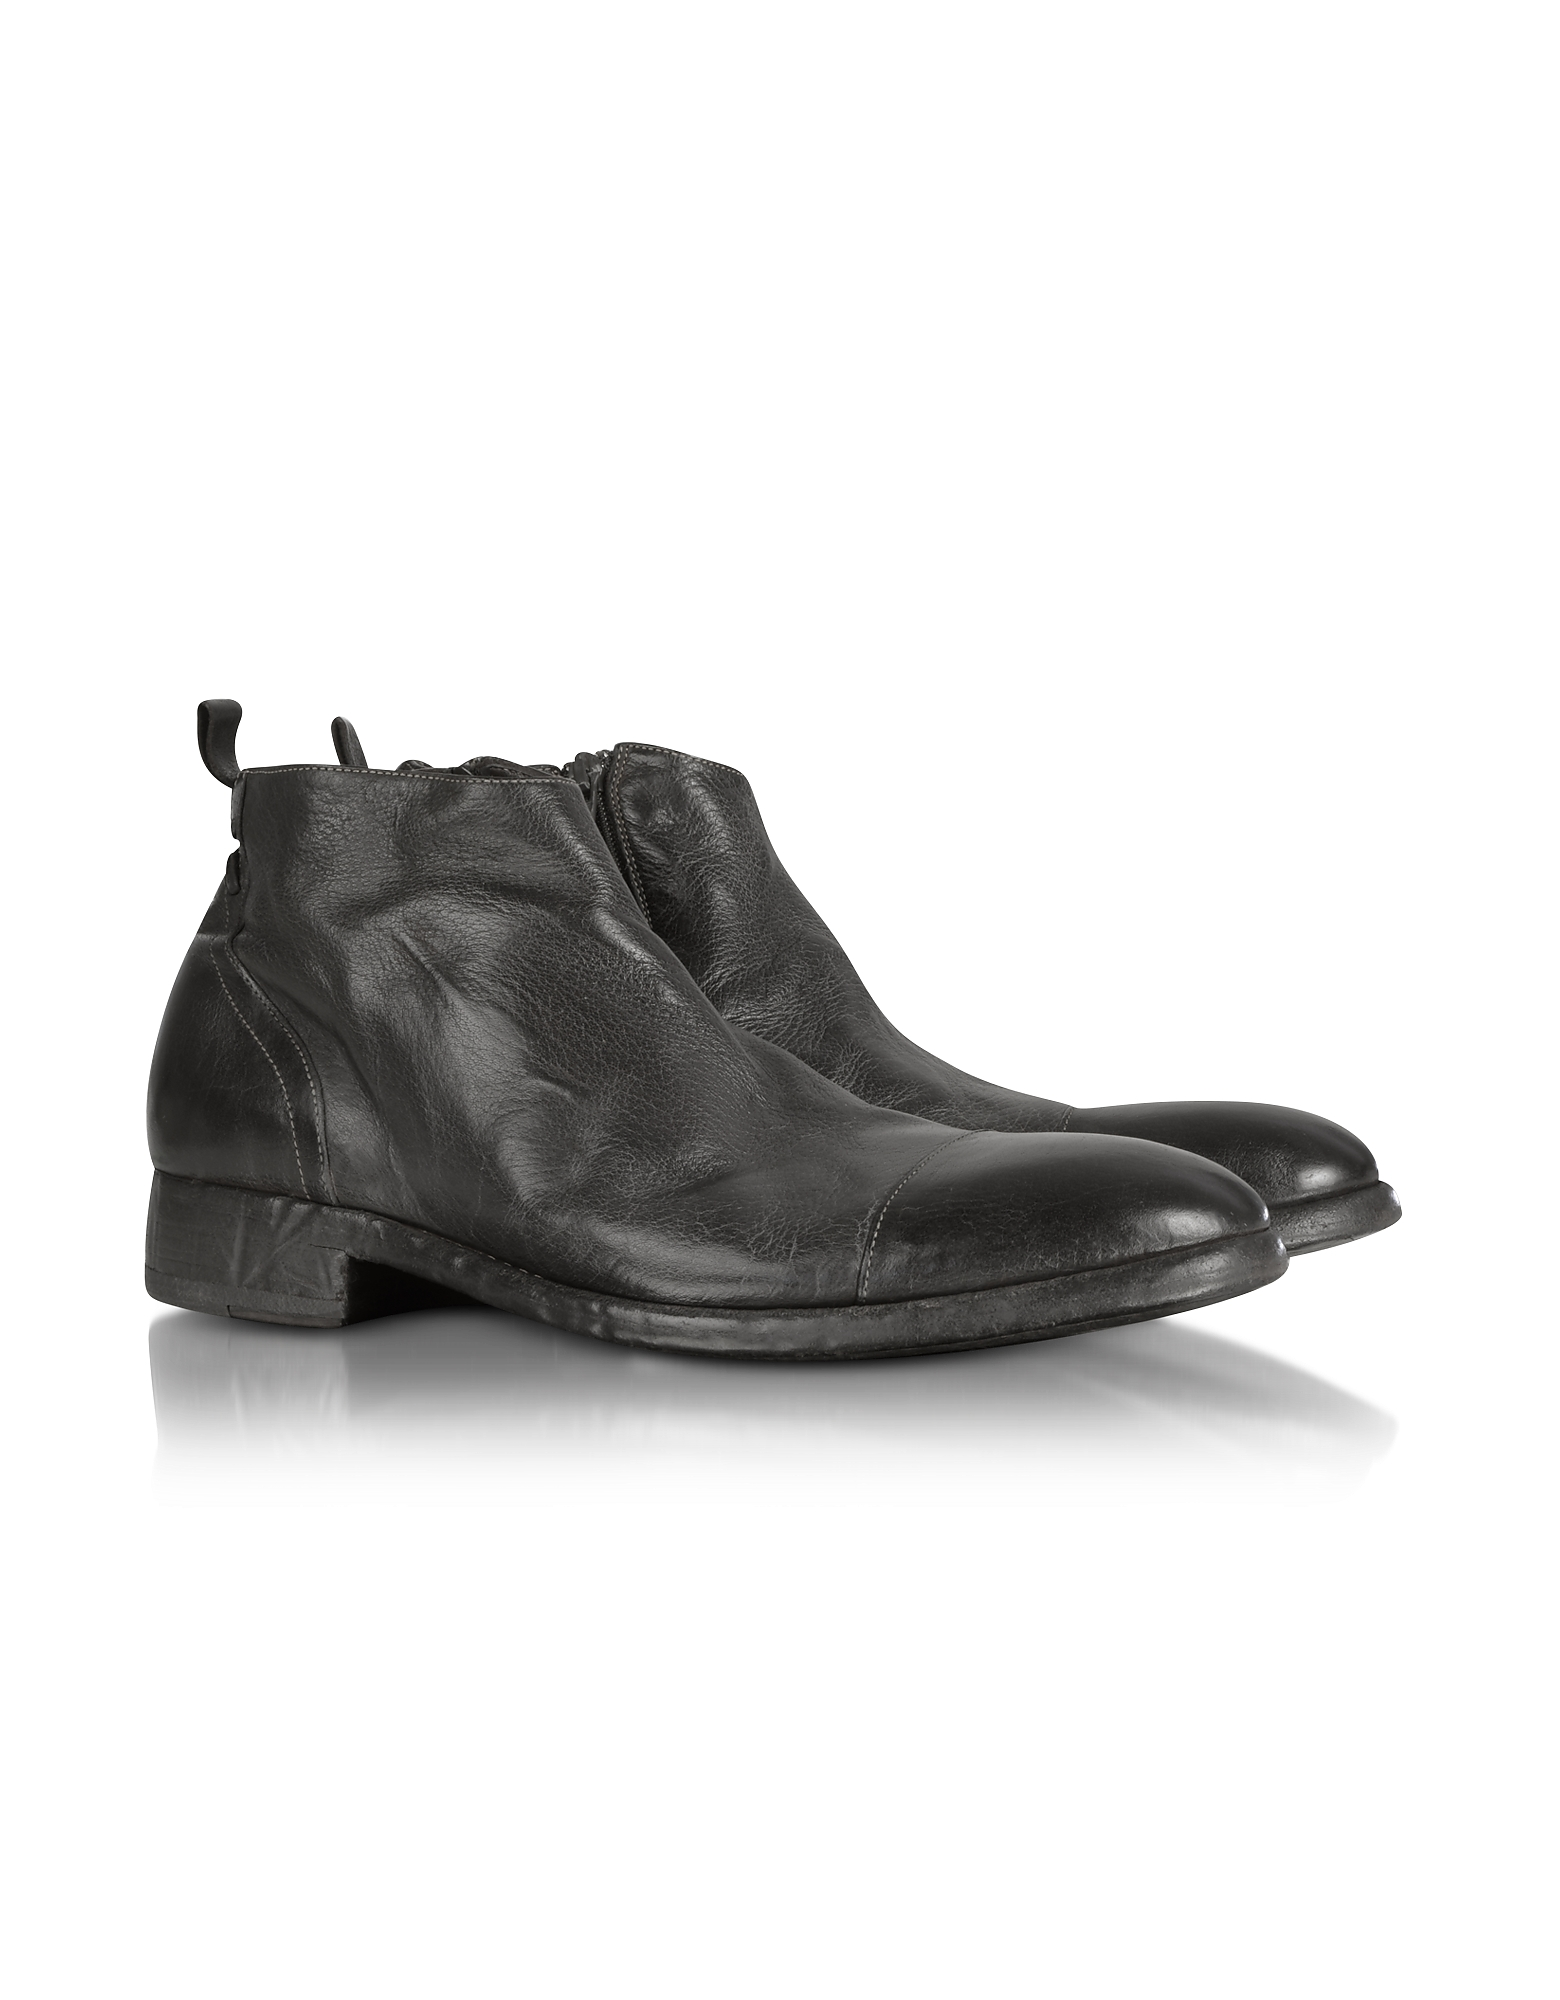 Forzieri Shoes, Ebony Washed Leather Boots